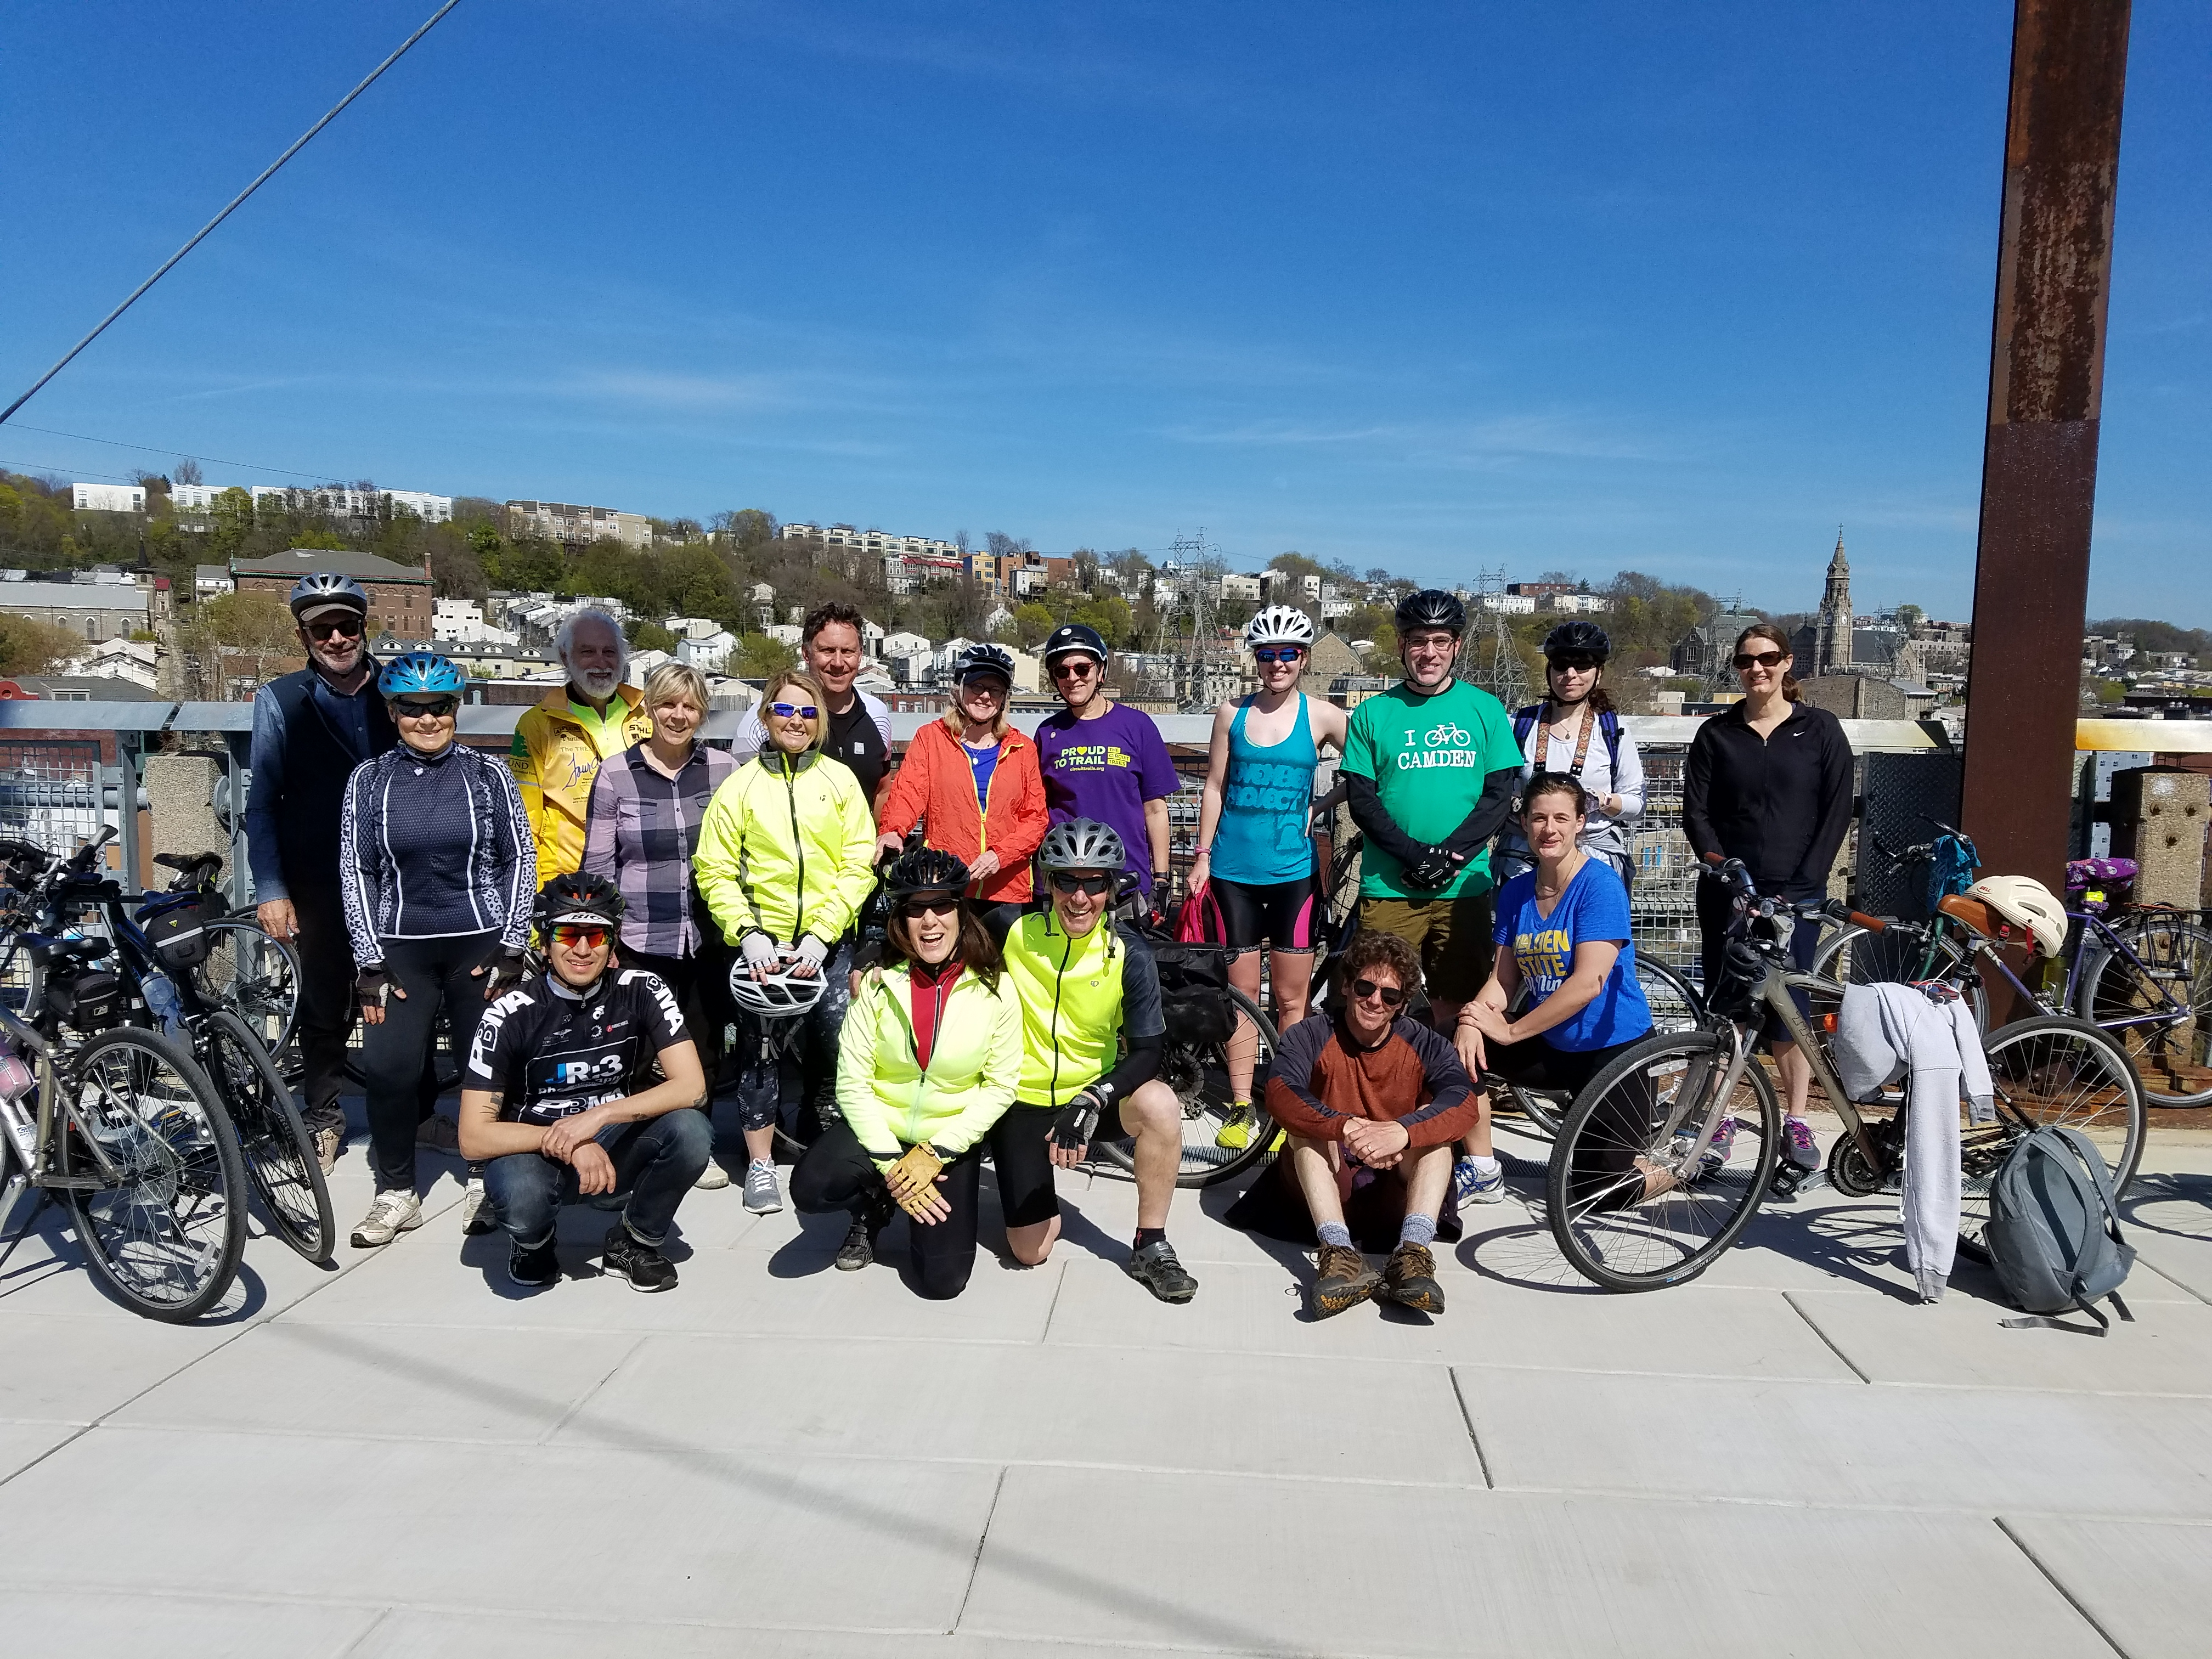 Participants who took part in the Barnes to Barnes ride